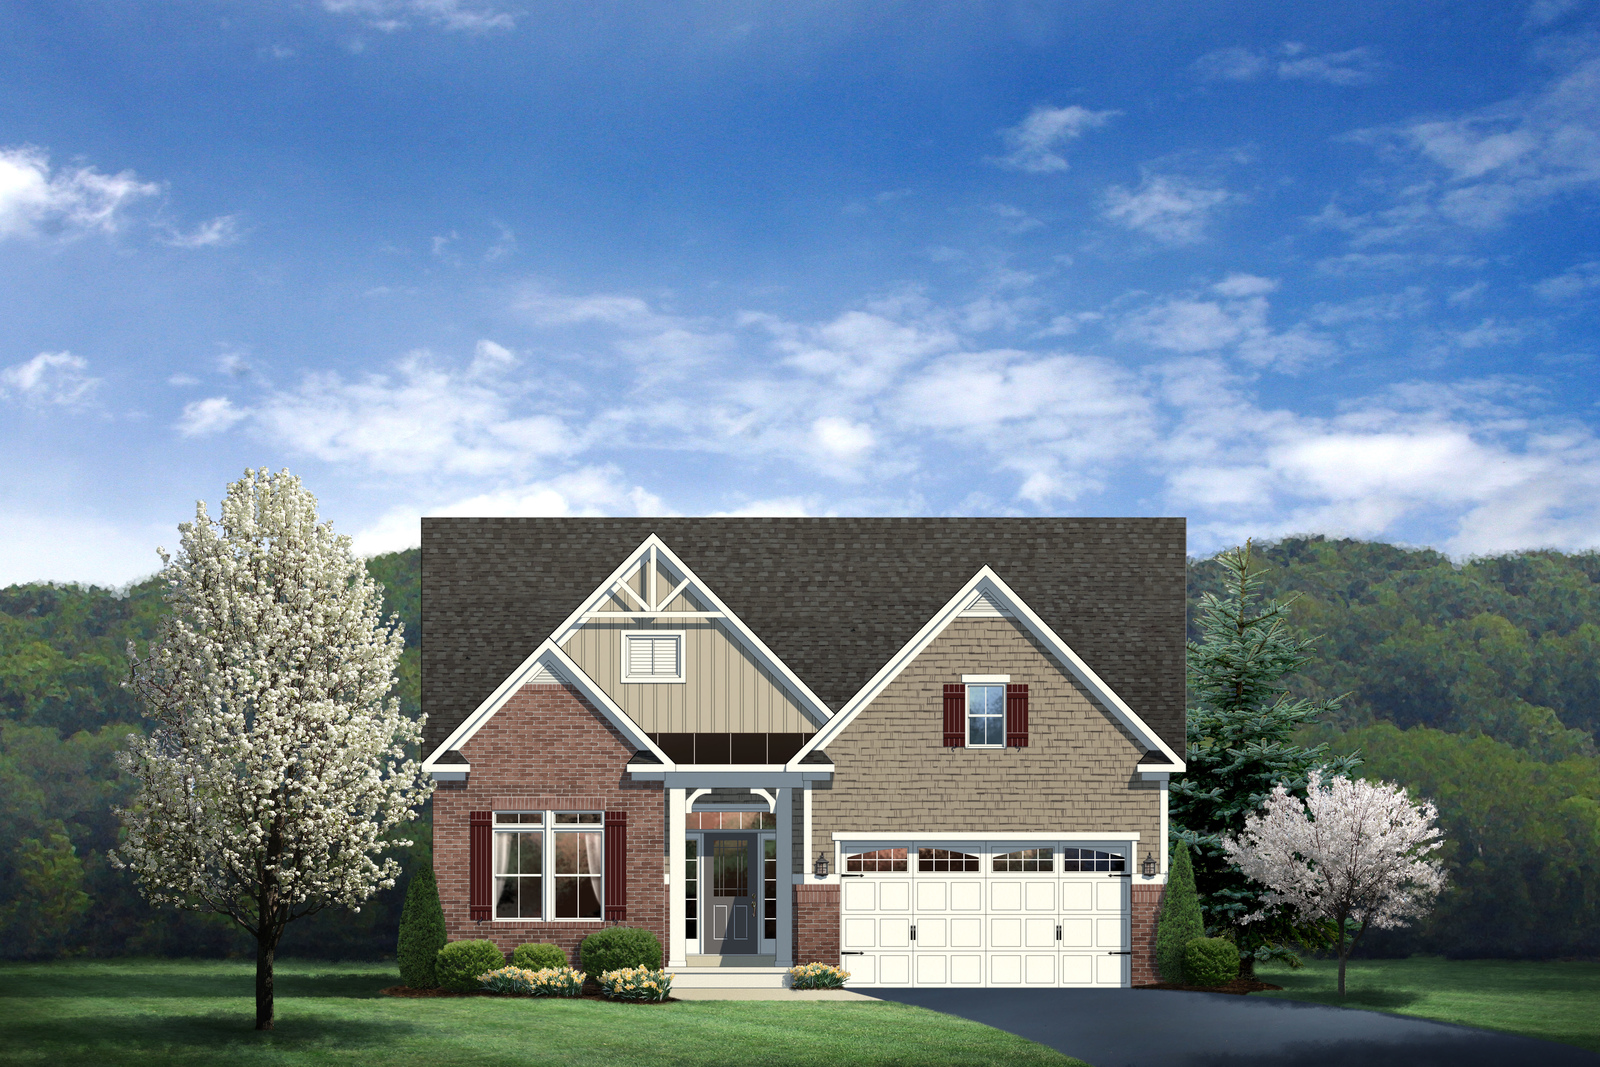 New Construction Single Family Homes For Sale Ravenna: New Construction Single-Family Homes For Sale -Daventry